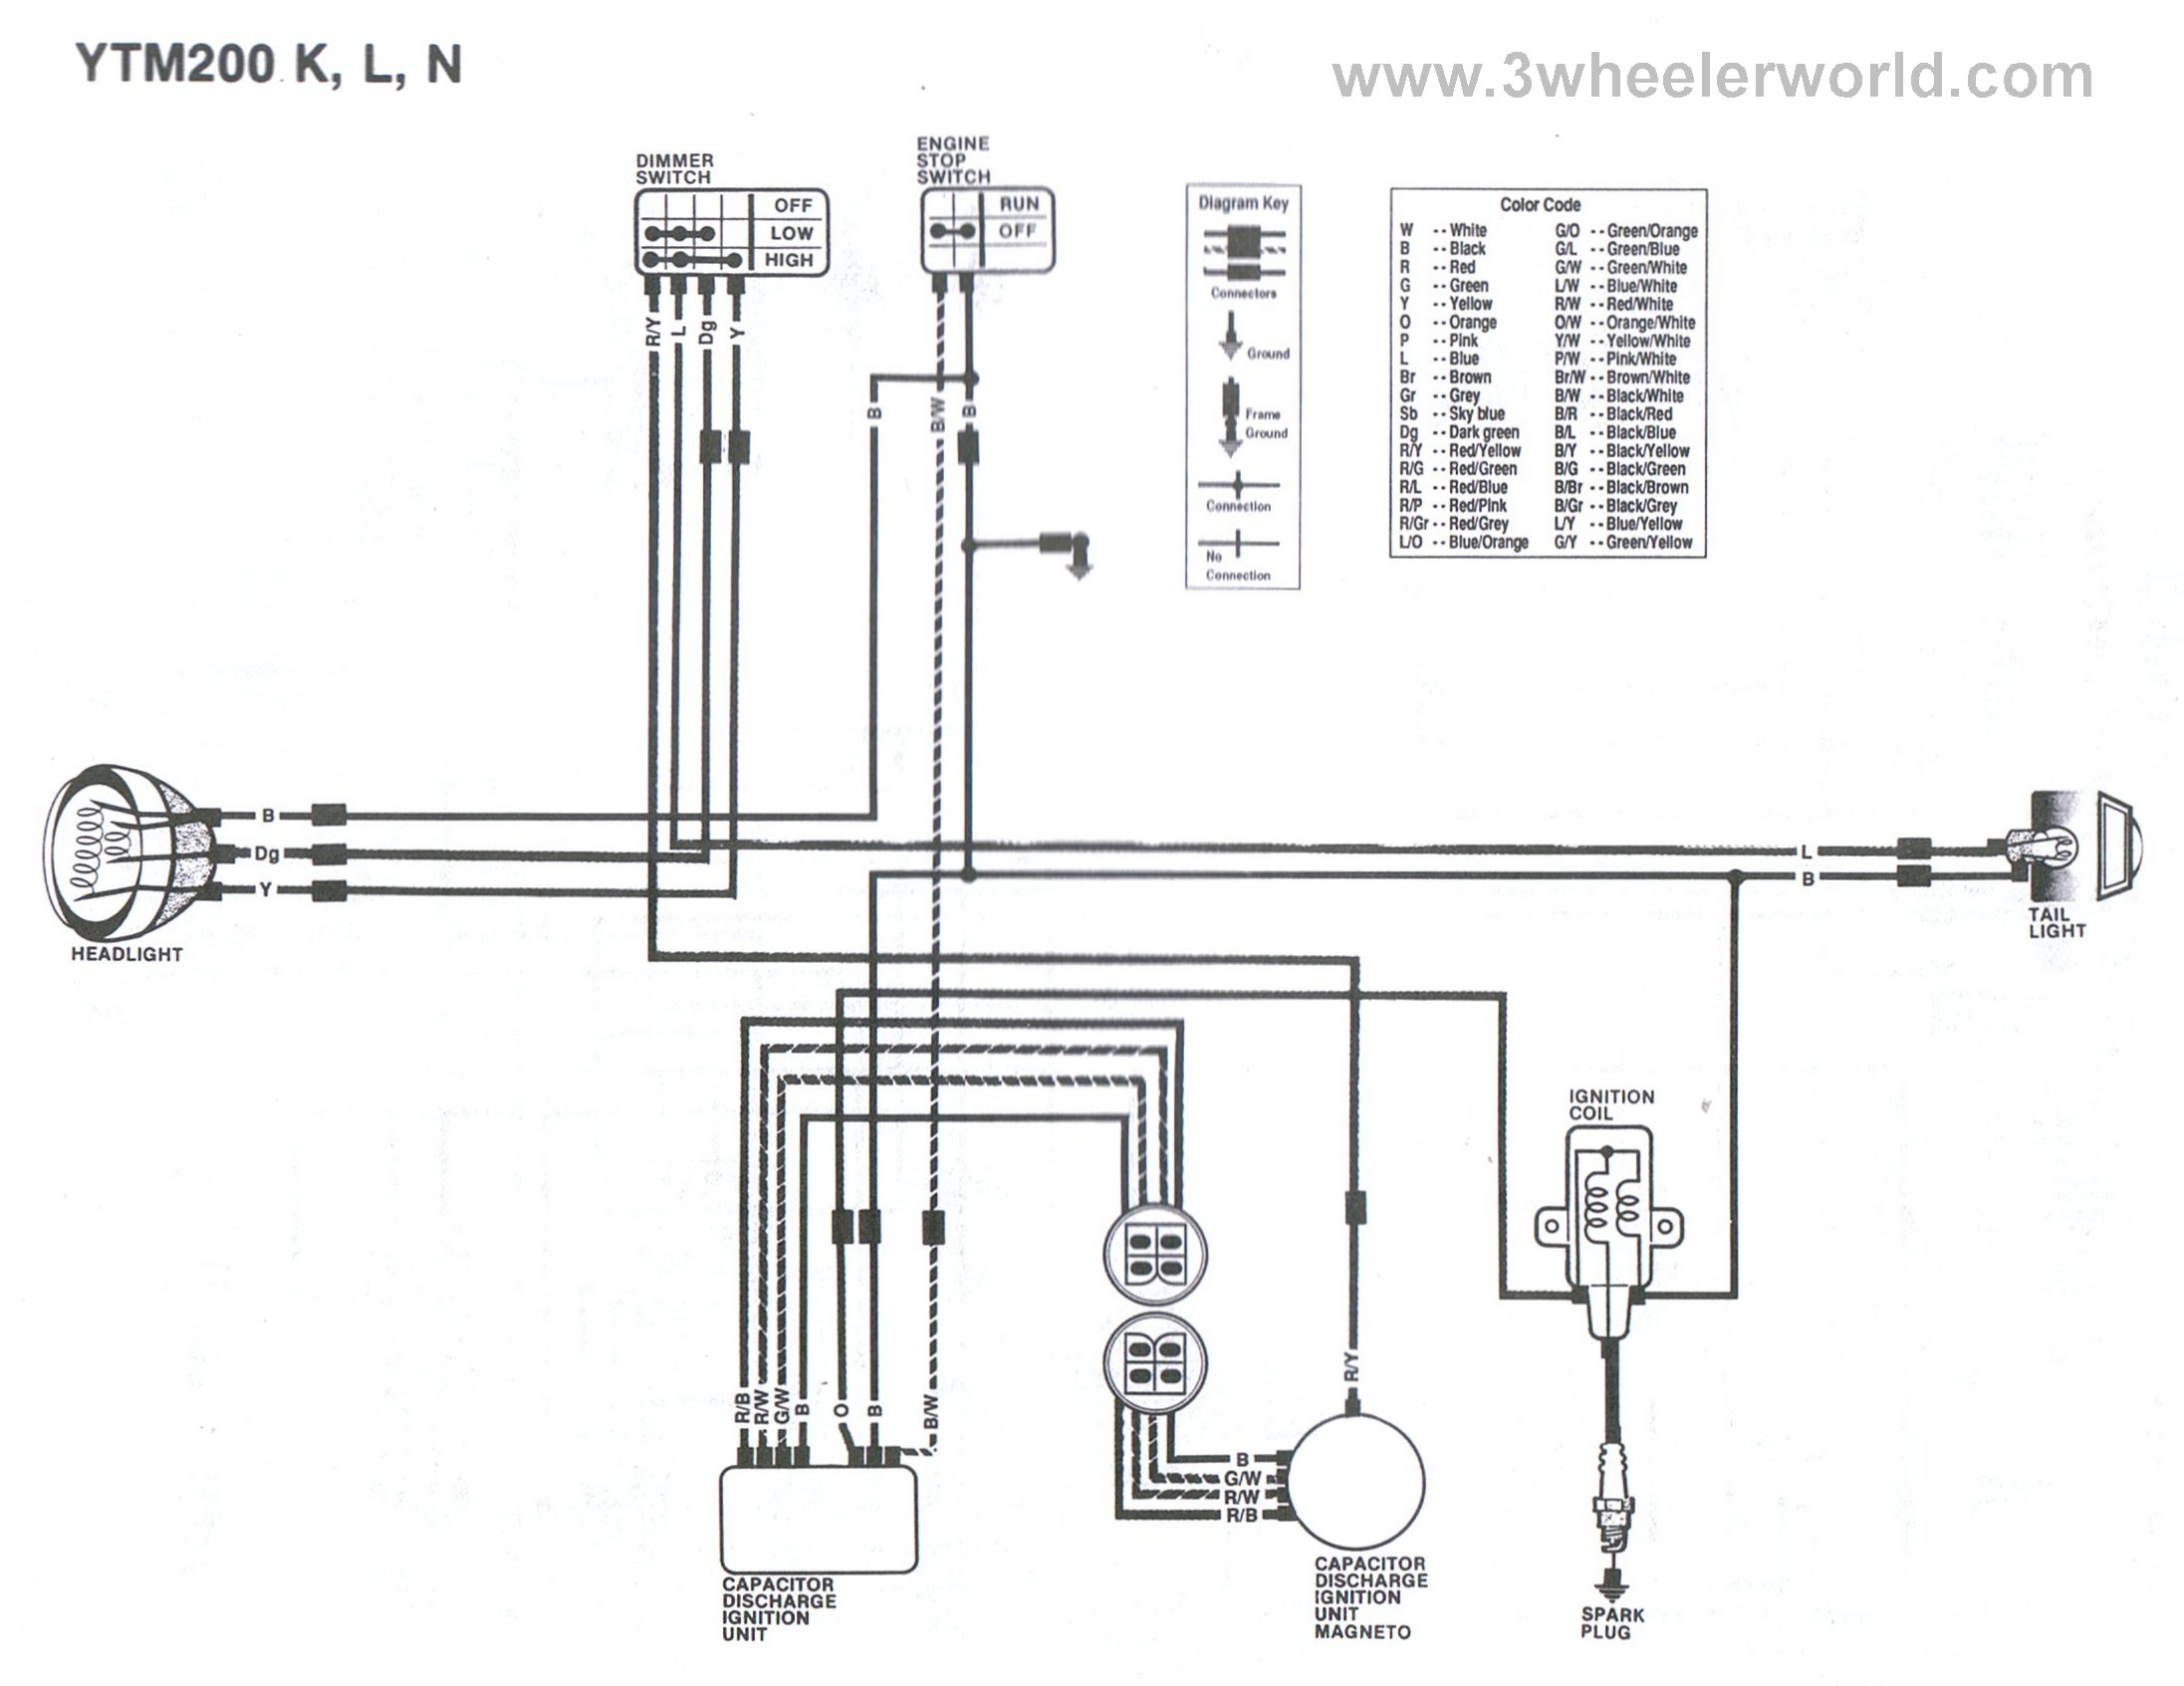 YTM200KLN 3 wheeler world tech help yamaha wiring diagrams  at crackthecode.co